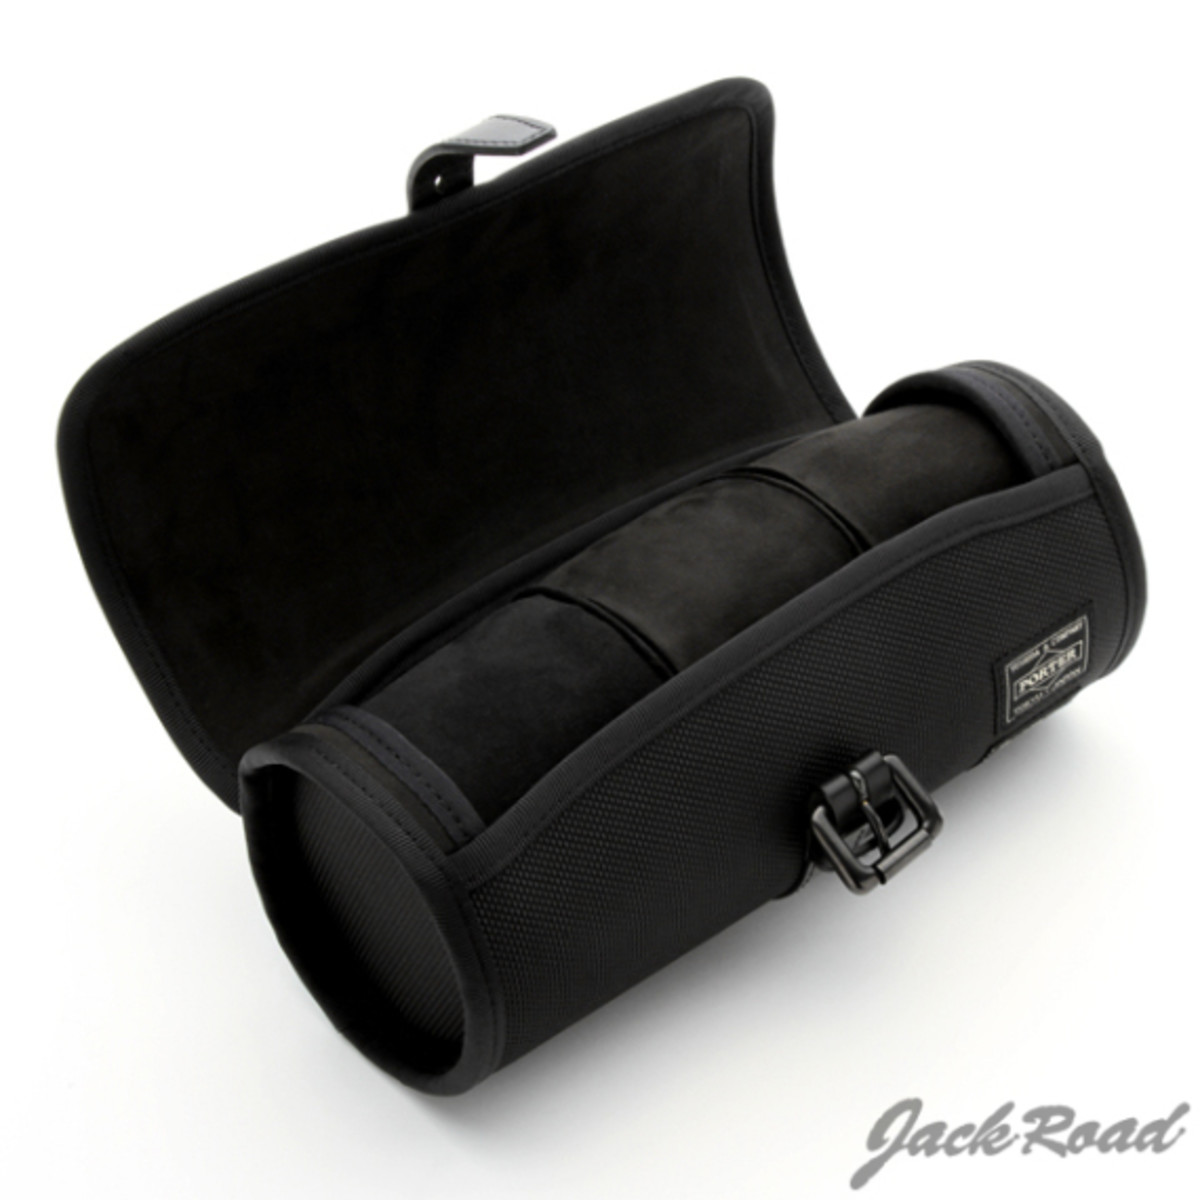 jack-road-porter-watch-carrying-case-10